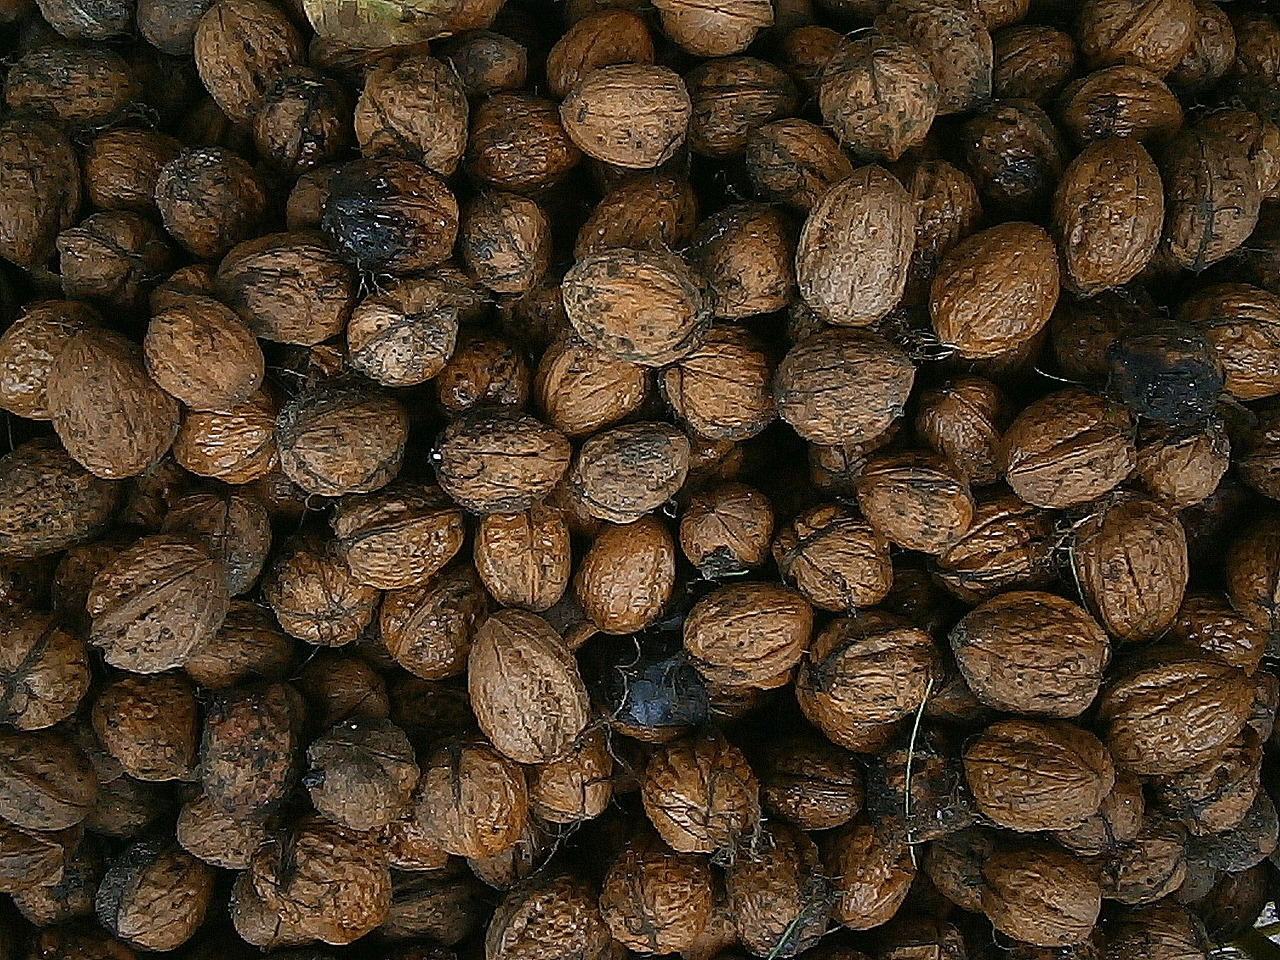 walnut nuts nut free photo